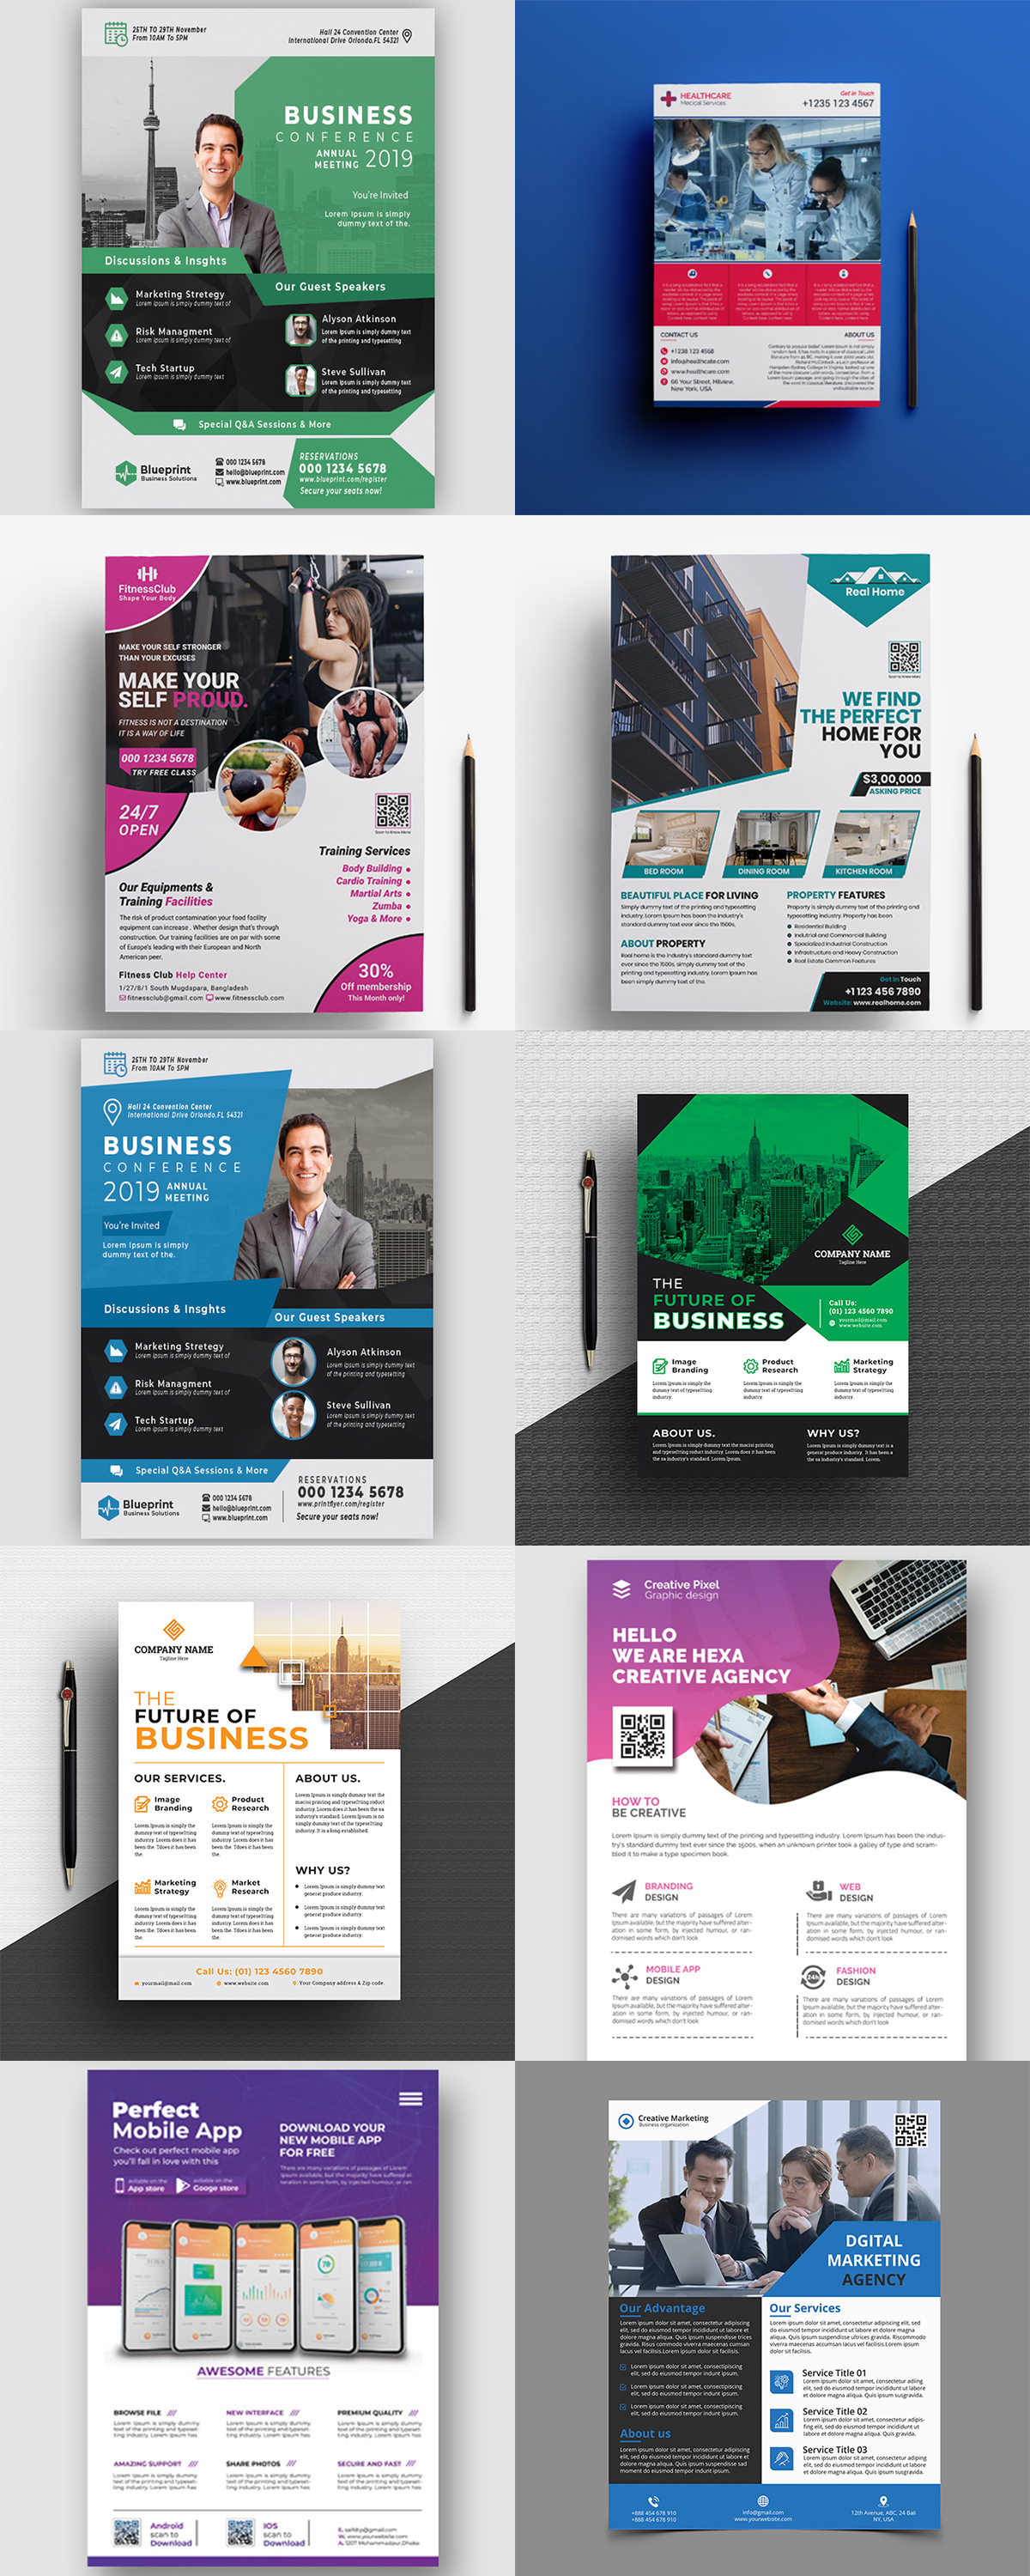 120 Concert Flyer Templates Bundle with Extended License - images 11